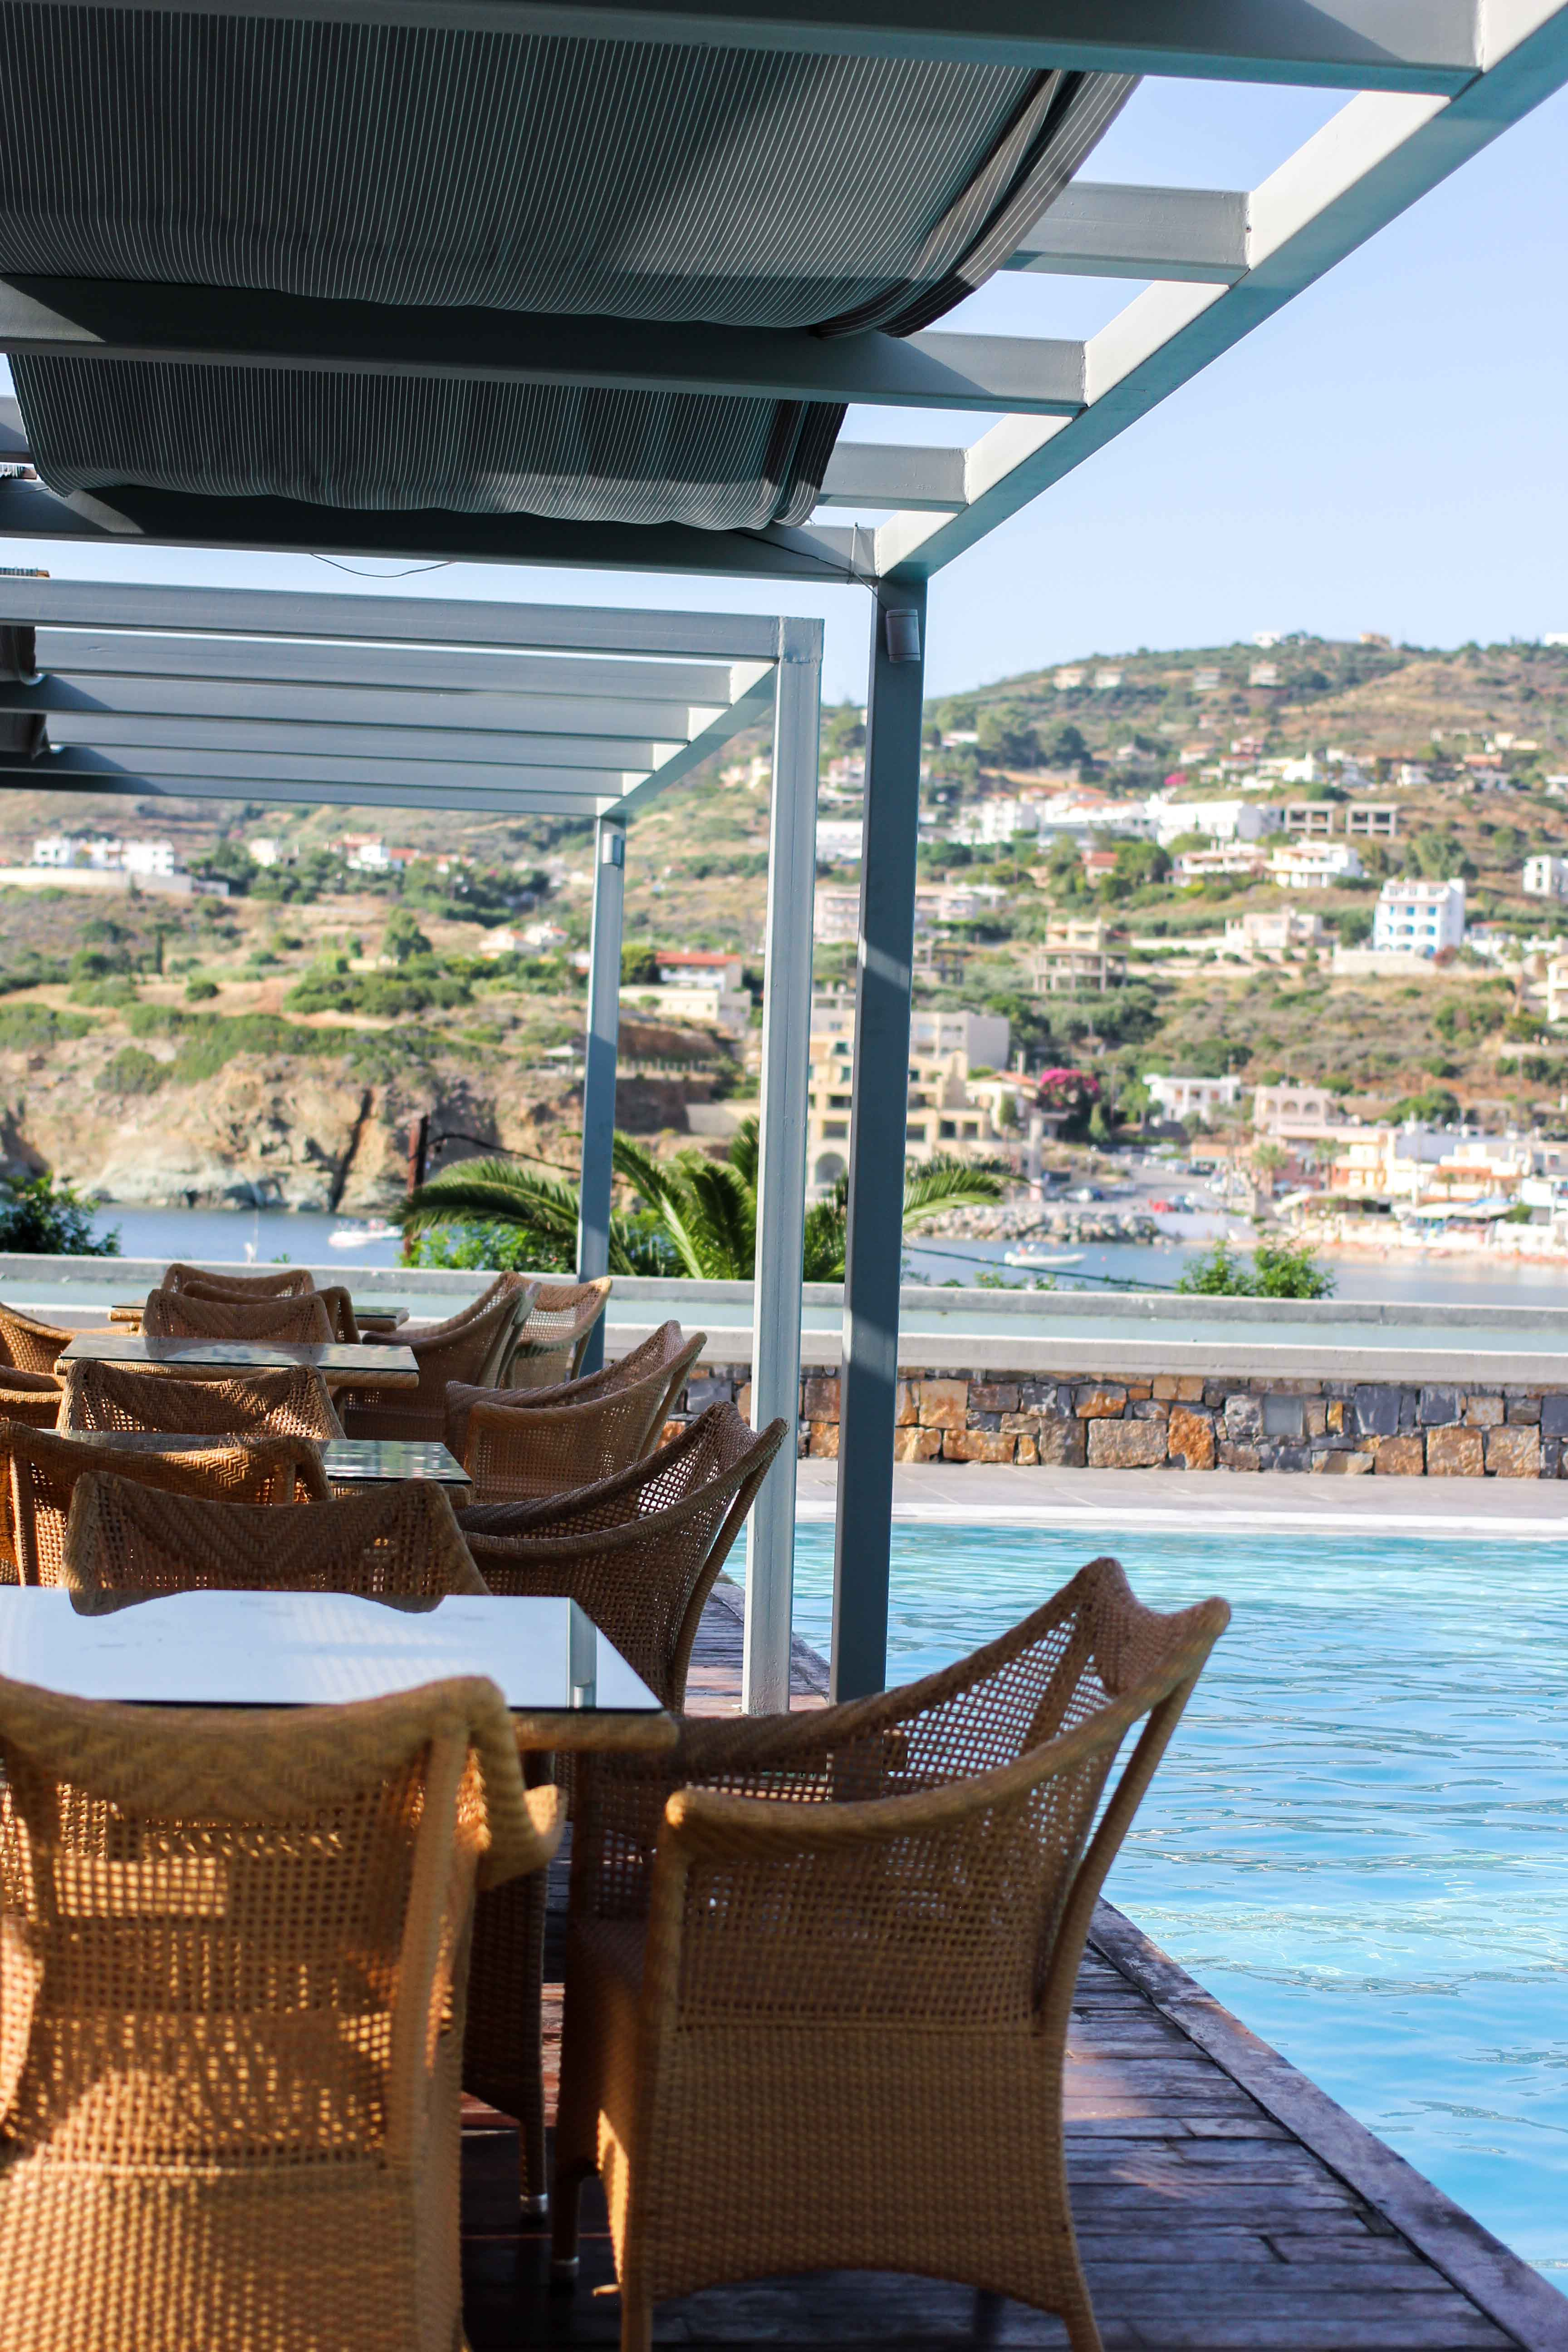 Out of the Blue Capsis Elite Resort Luxushotel Kreta Griechenland Reiseblog Pool Restaurant 2